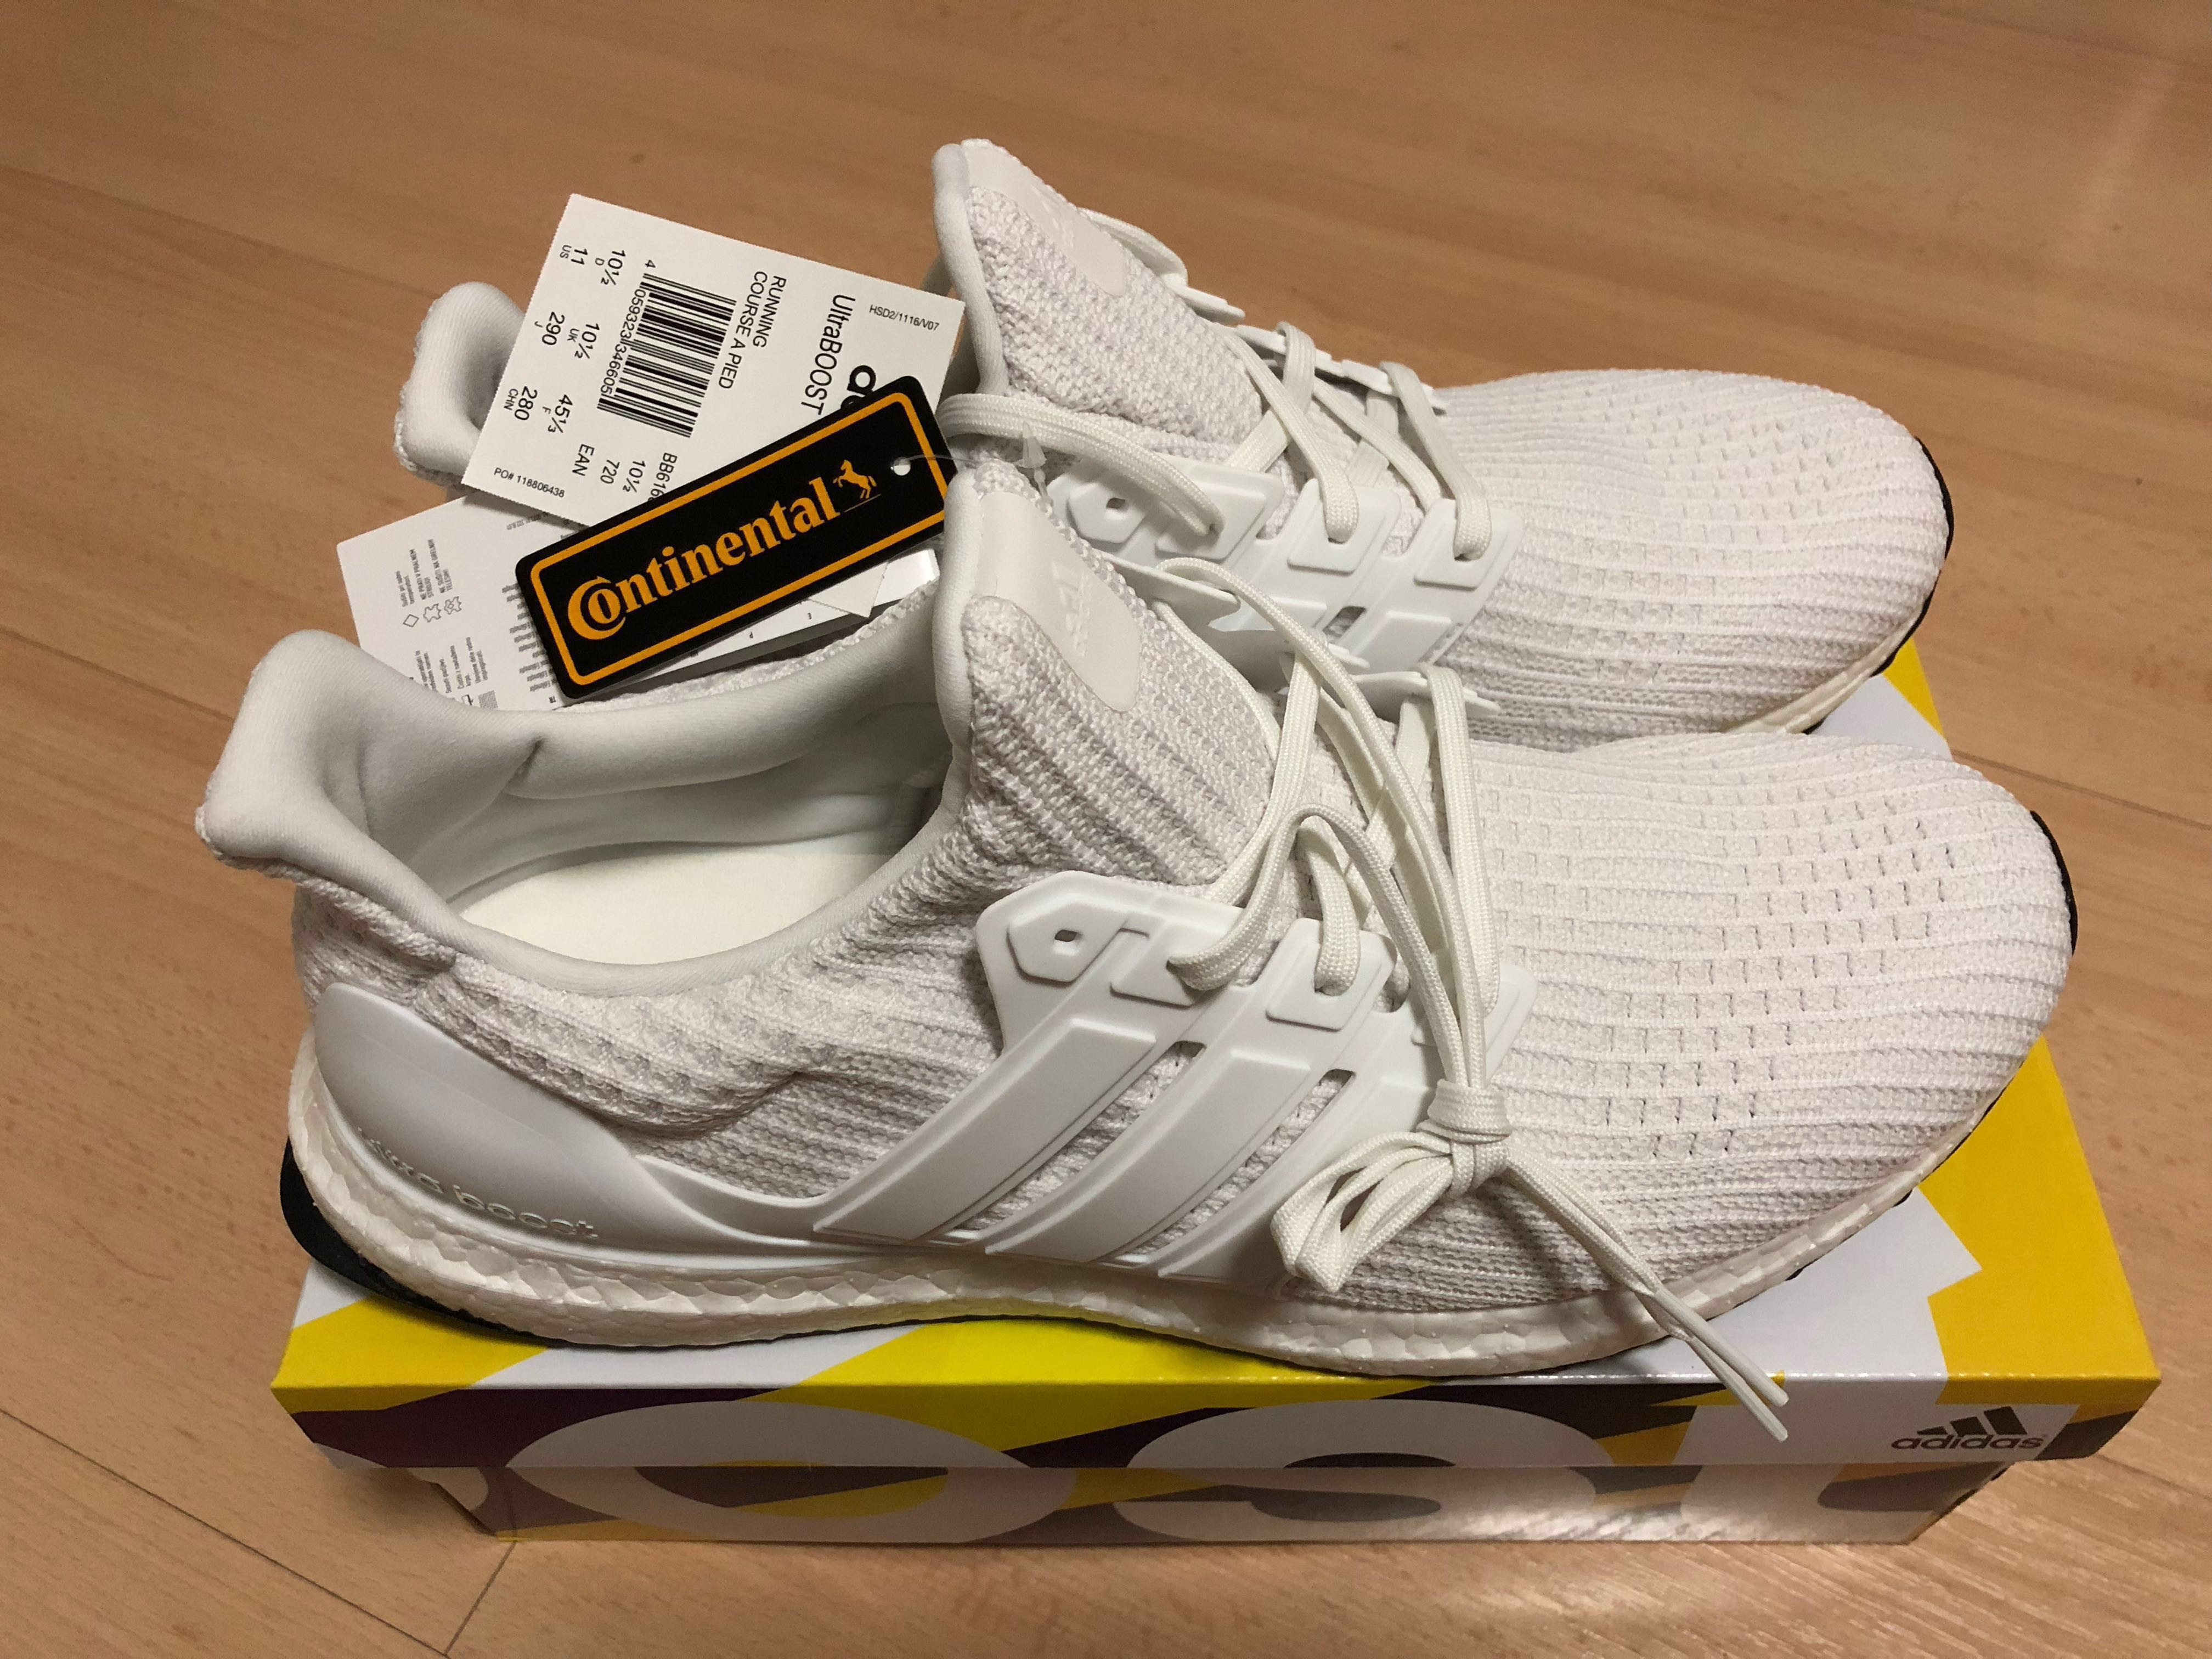 037b4e6d9 Adidas Ultra Boost 4.0 Triple White